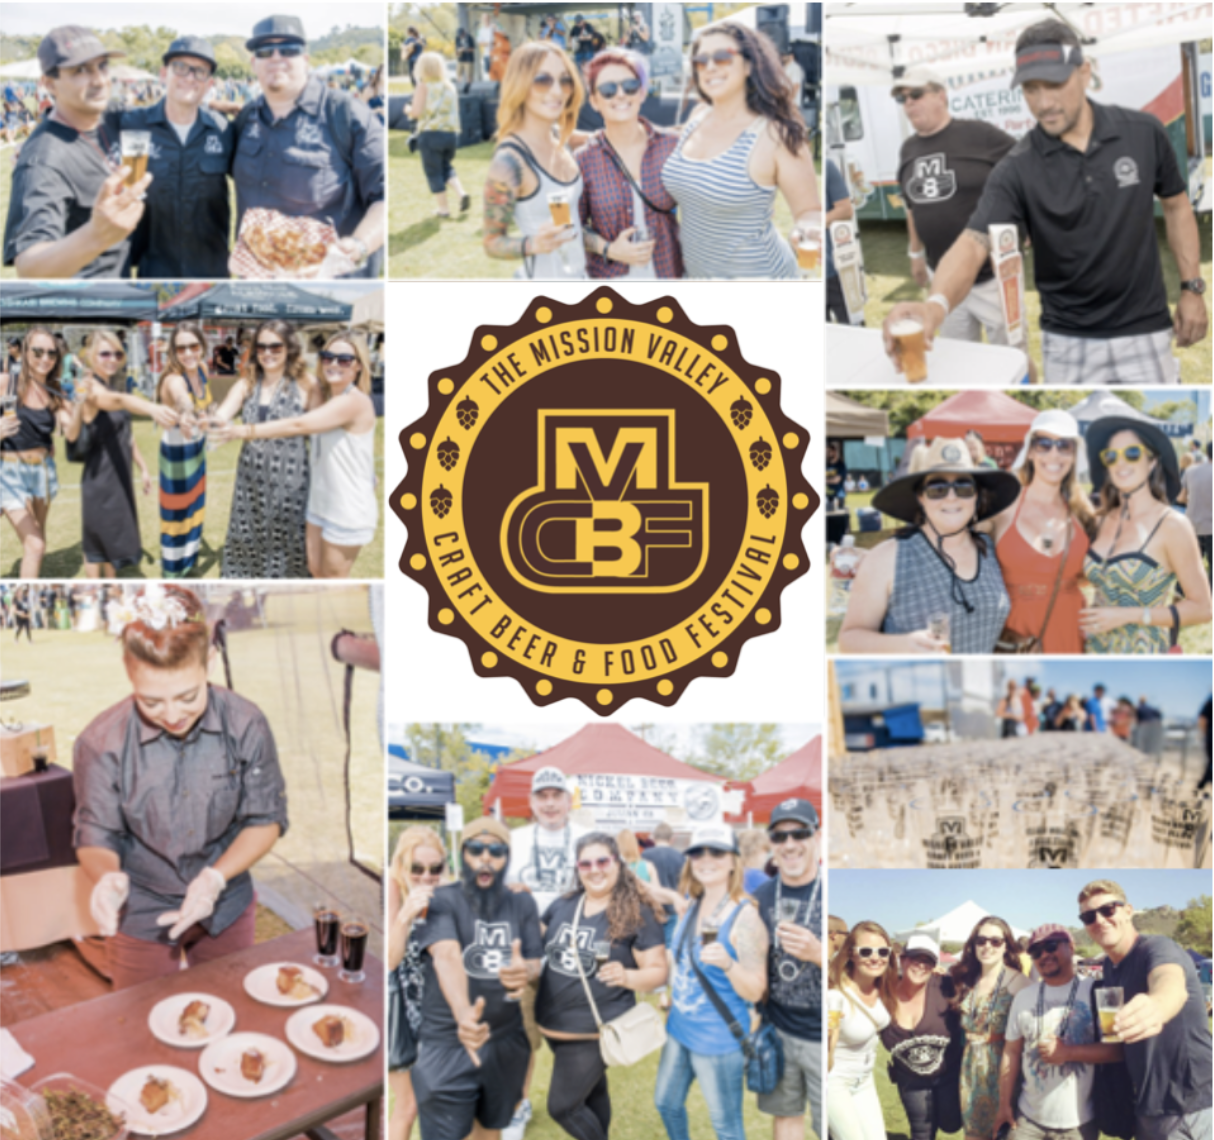 Save on passes & Enter to win VIP tickets to the Mission Valley Craft Beer & Food Festival